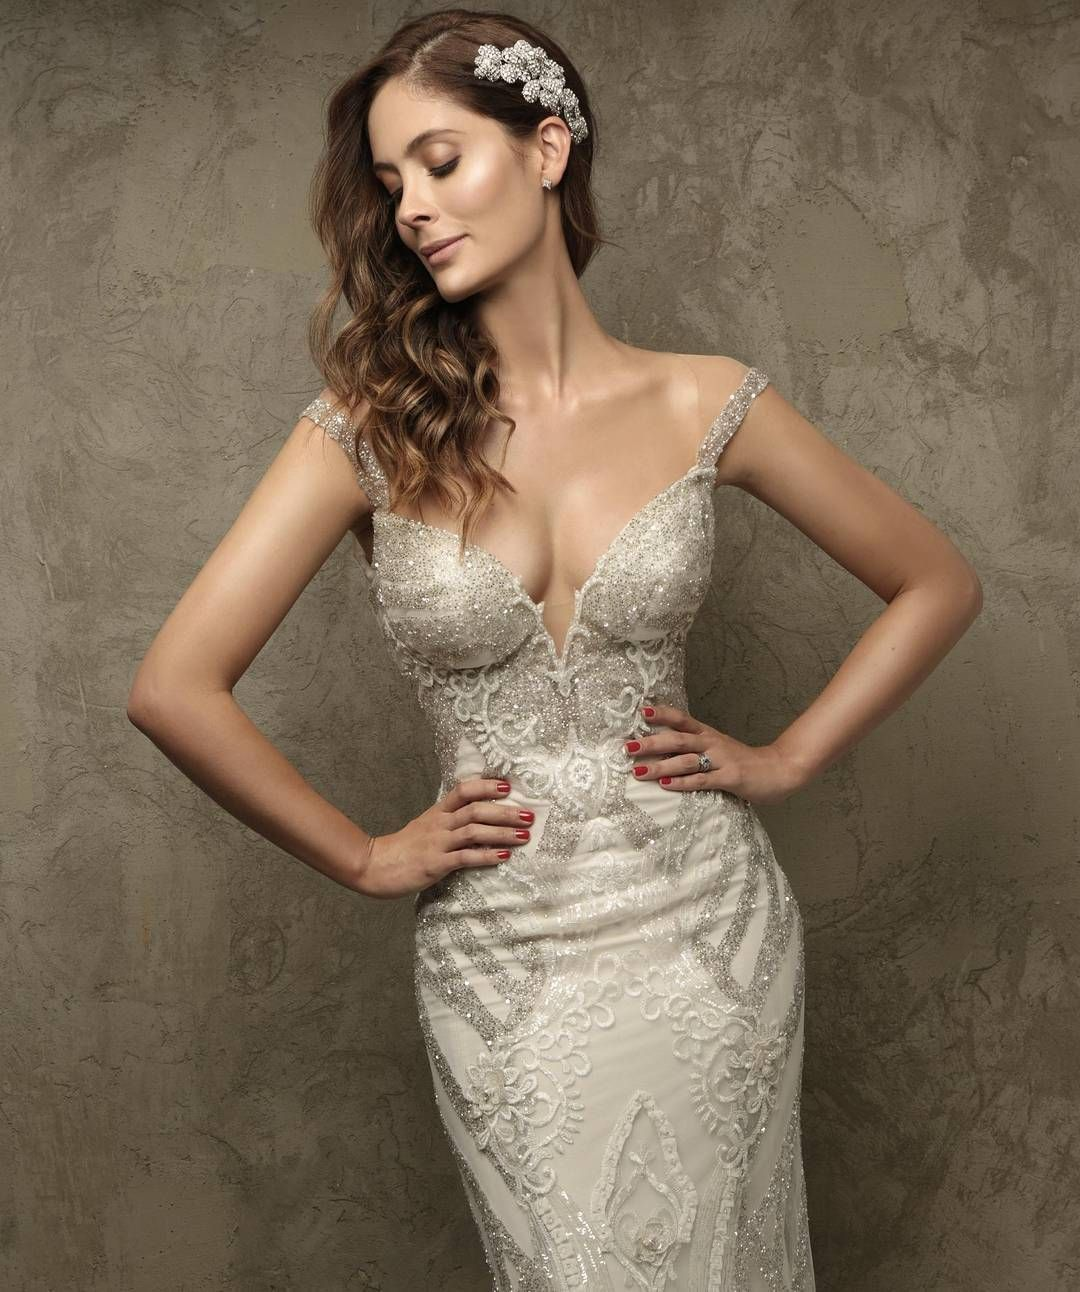 Belles wedding dress  This GLbride lauracardonar just blew our mind with the ultimate